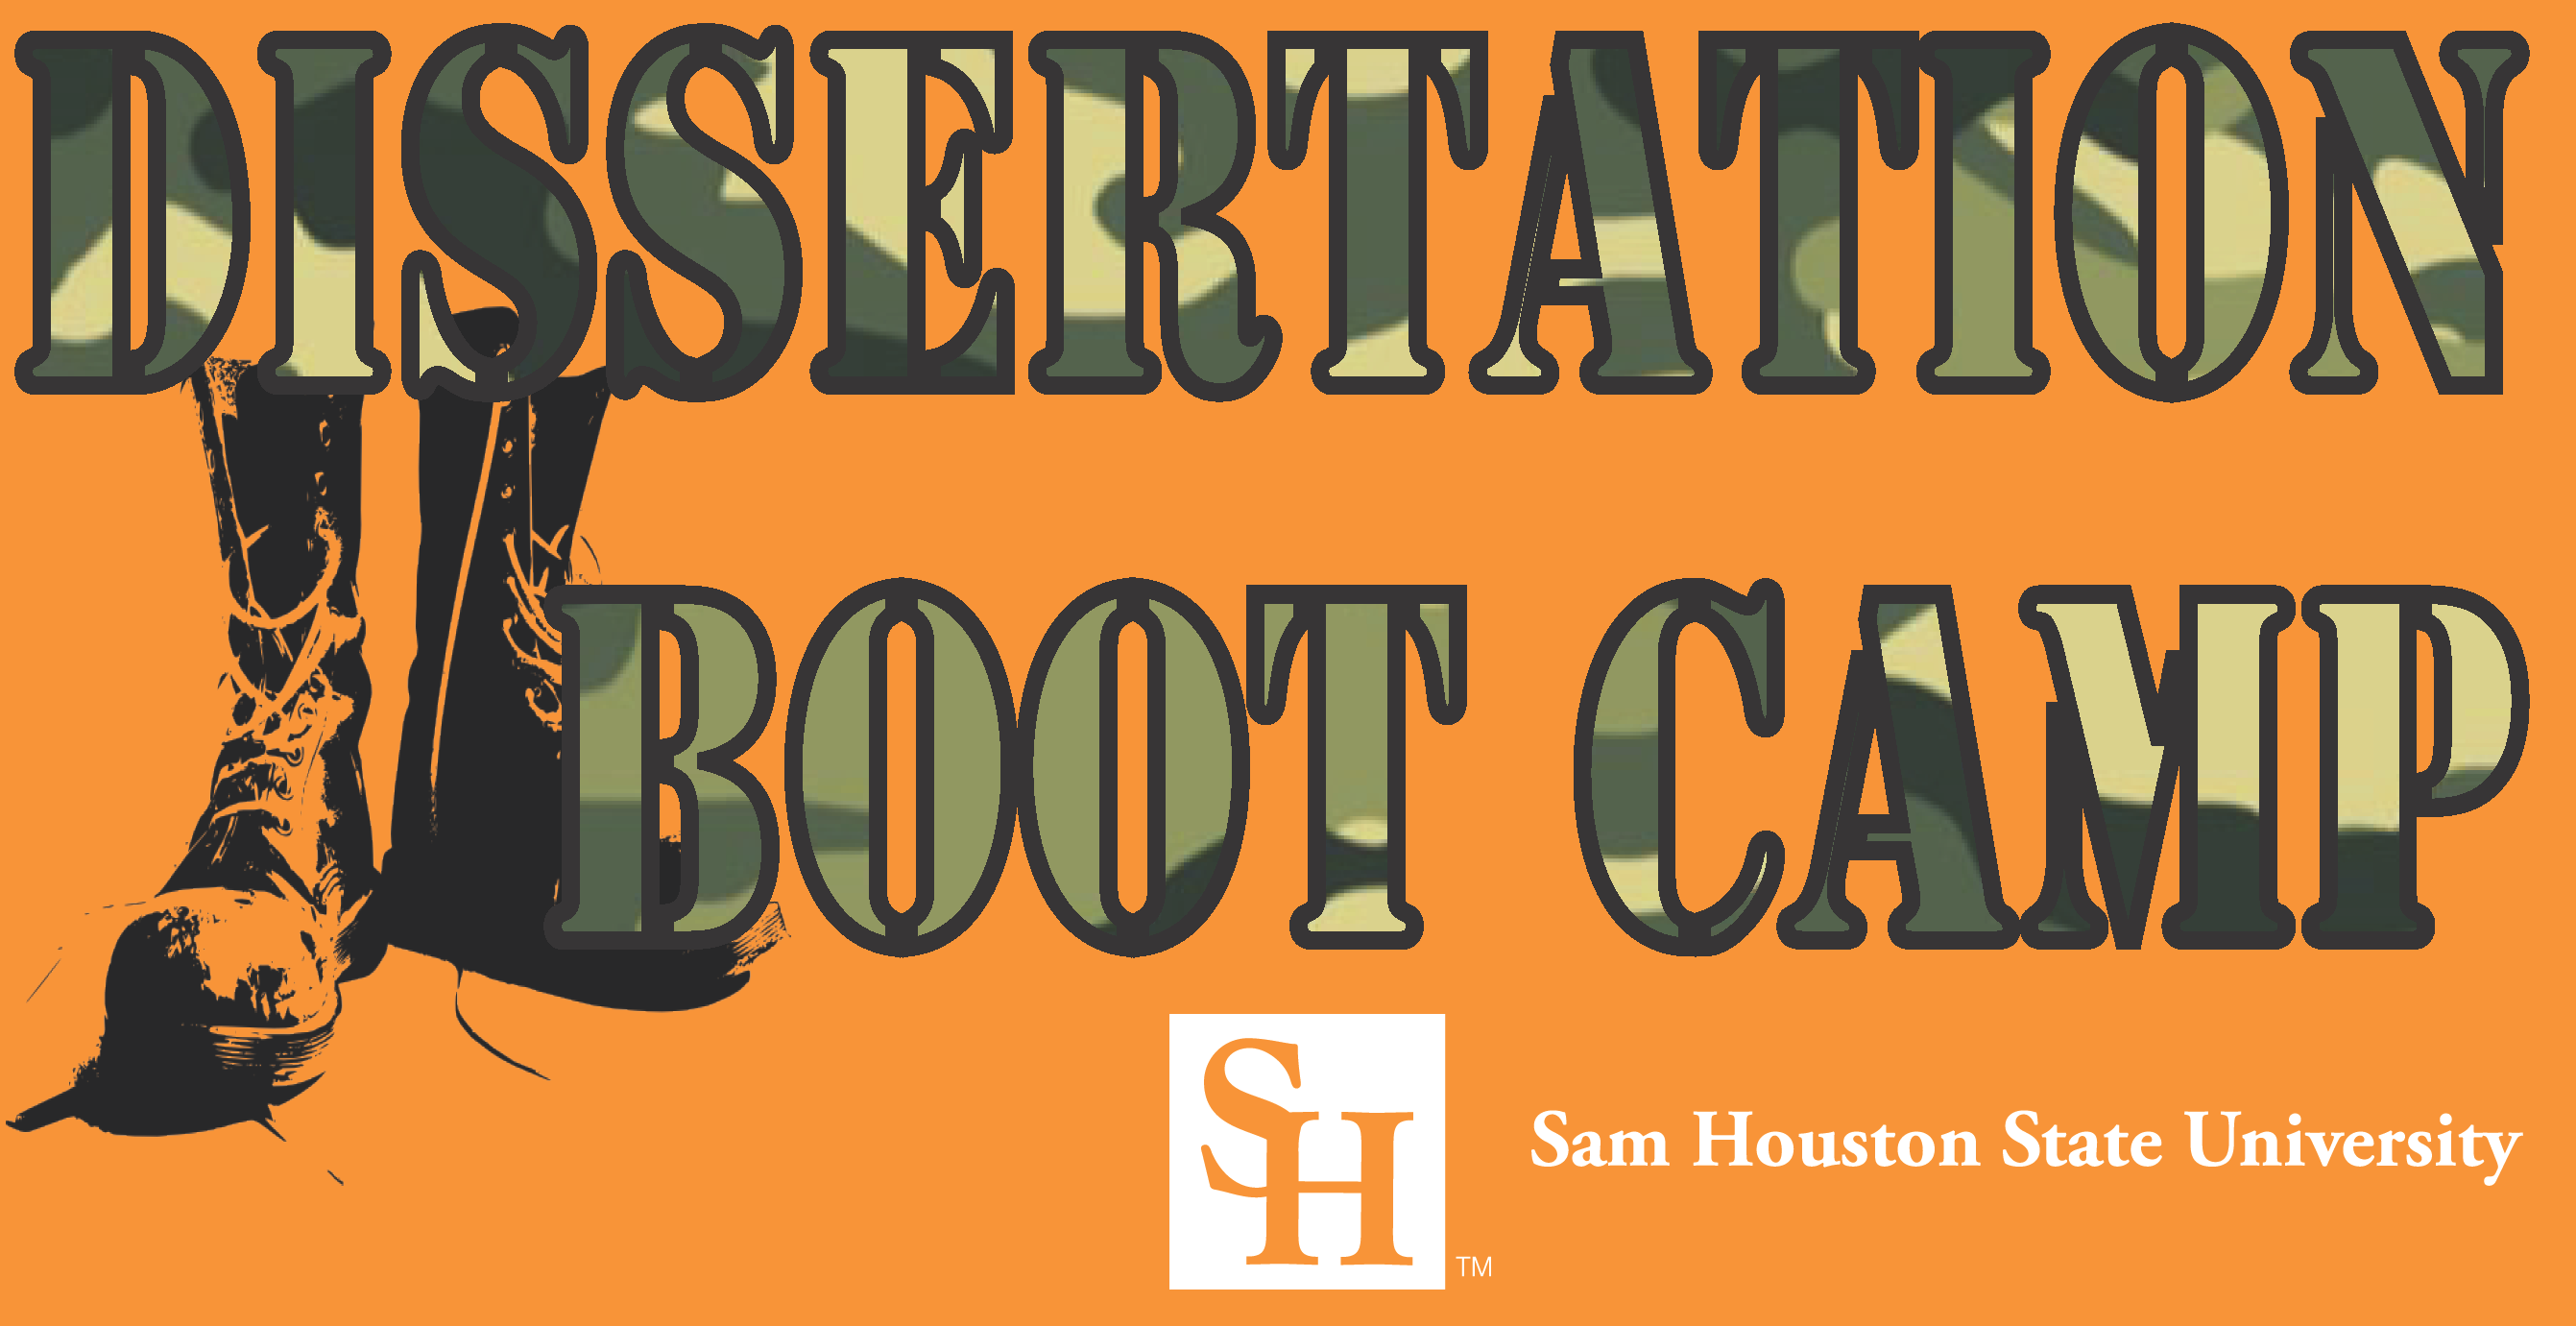 Dissertation Boot Camp Sam Houston State University